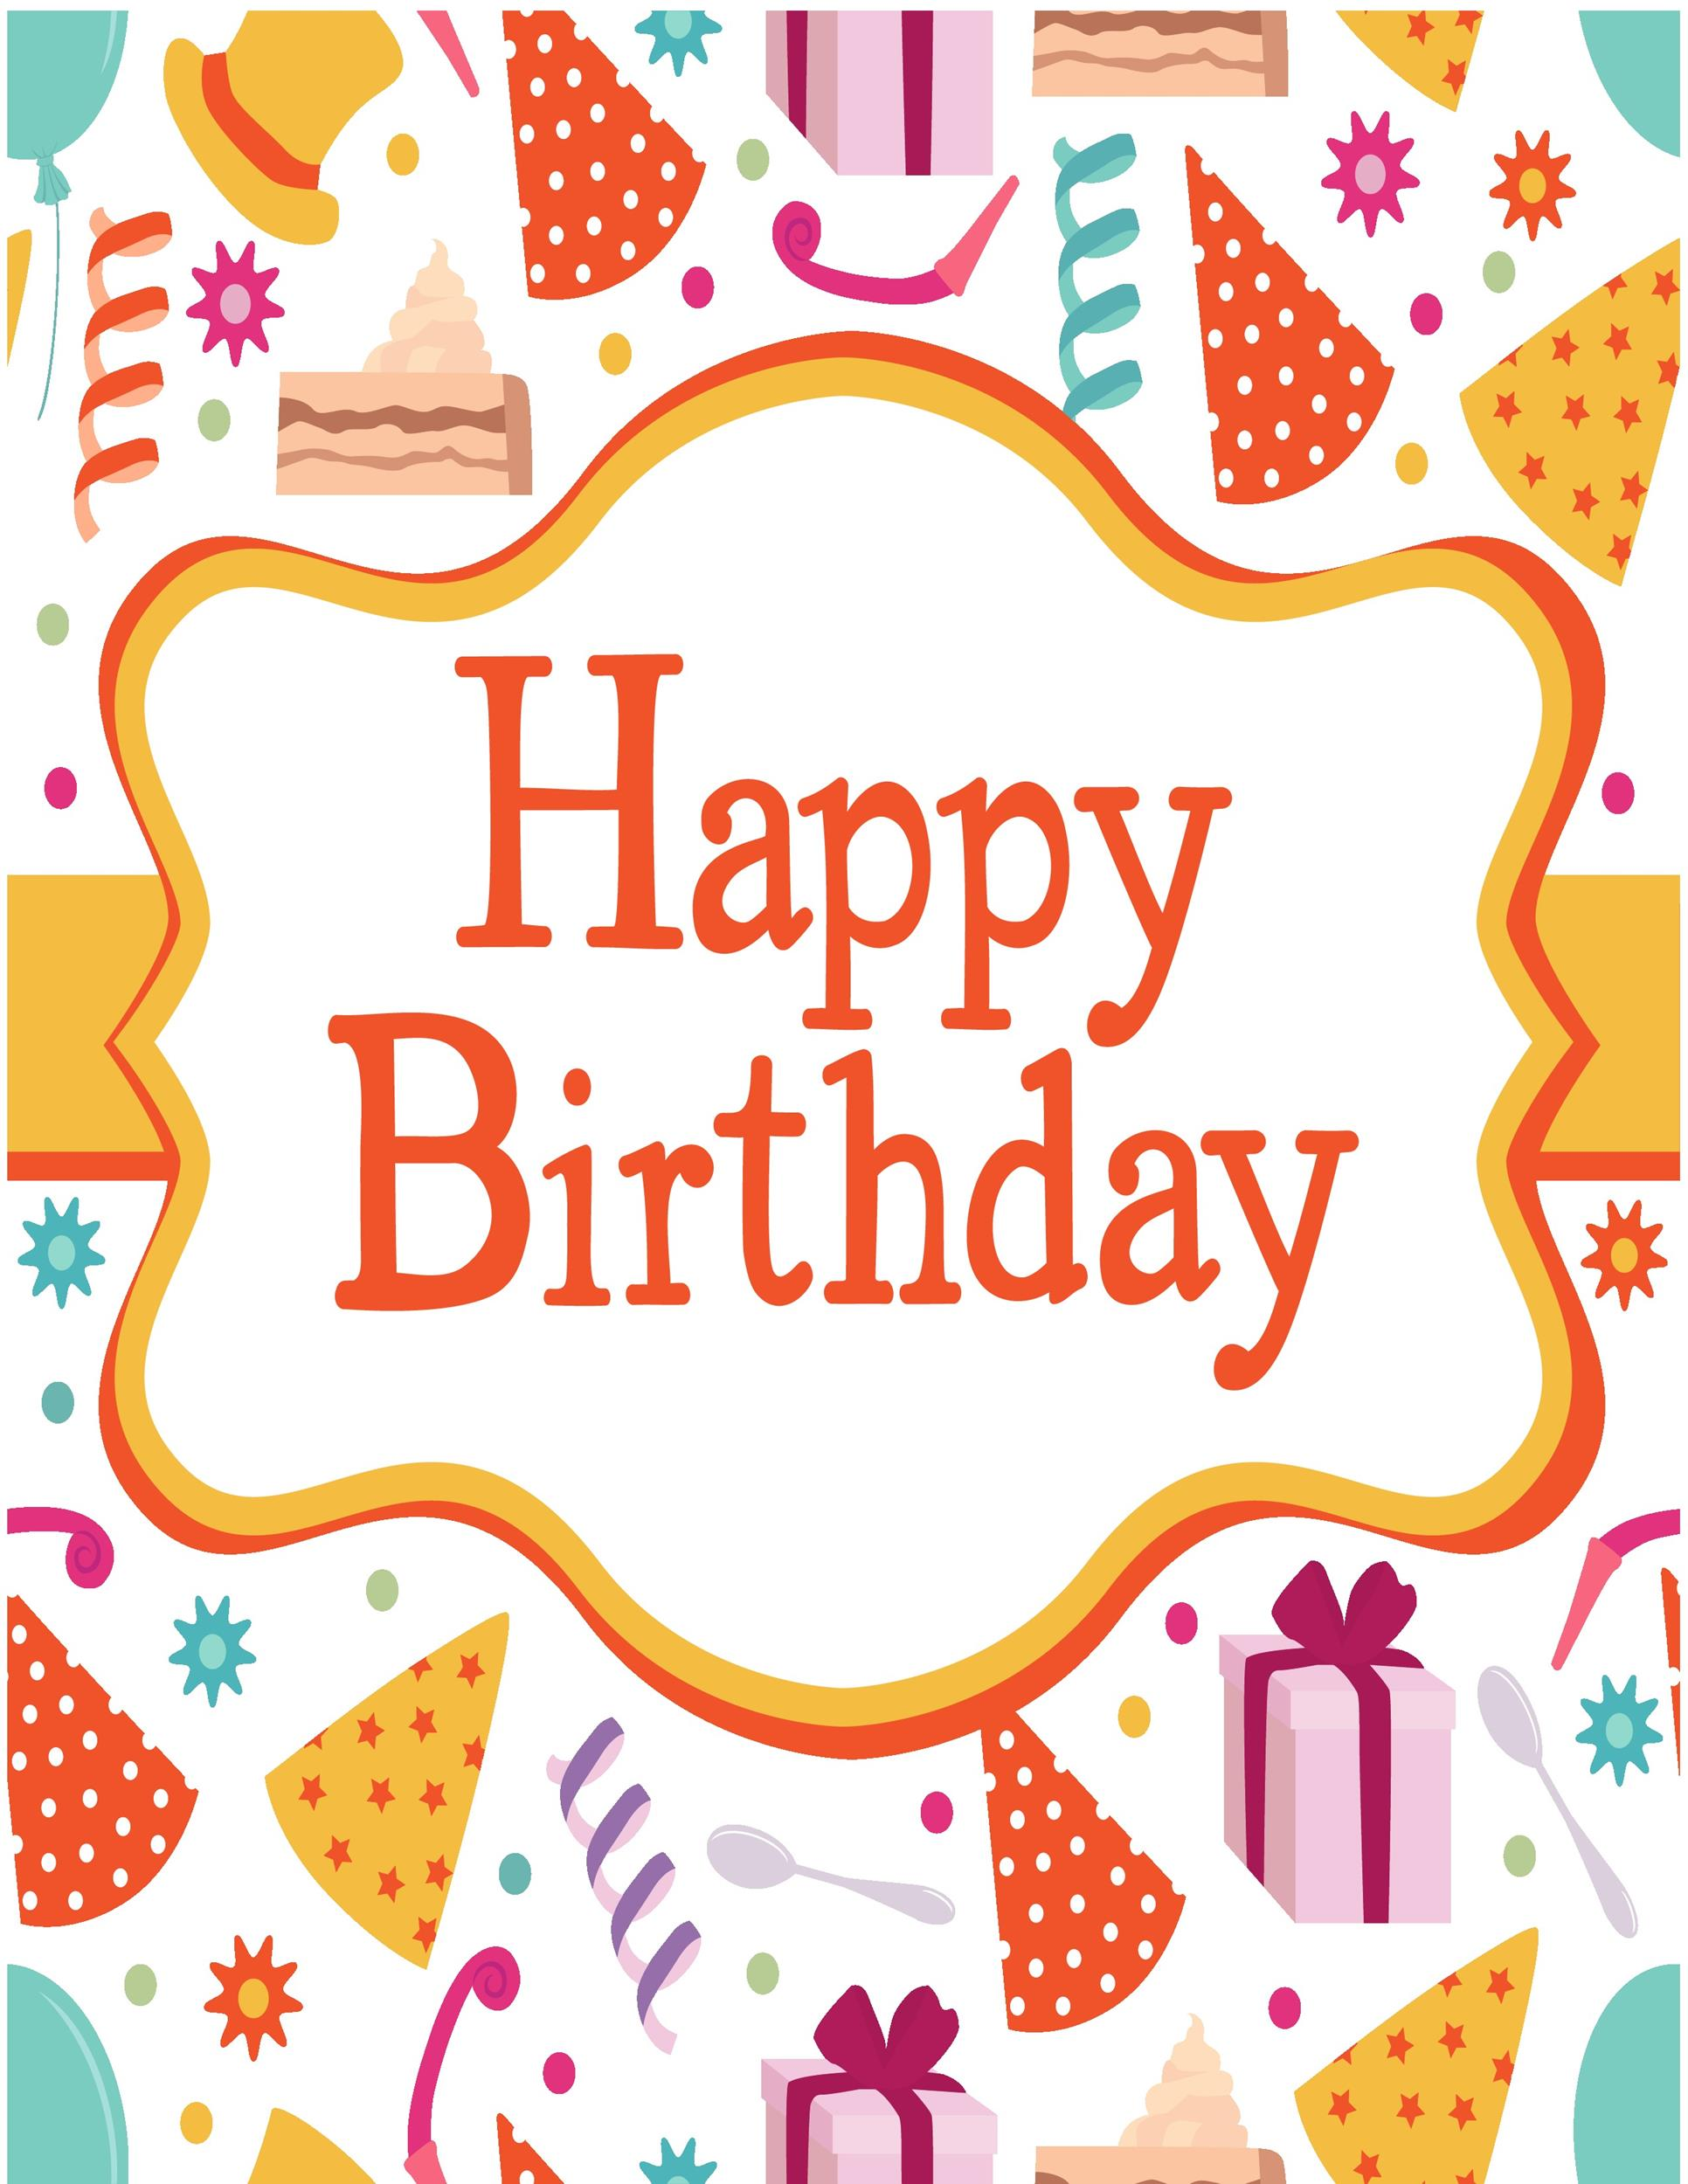 Fabulous 40 Free Birthday Card Templates Templatelab Funny Birthday Cards Online Overcheapnameinfo